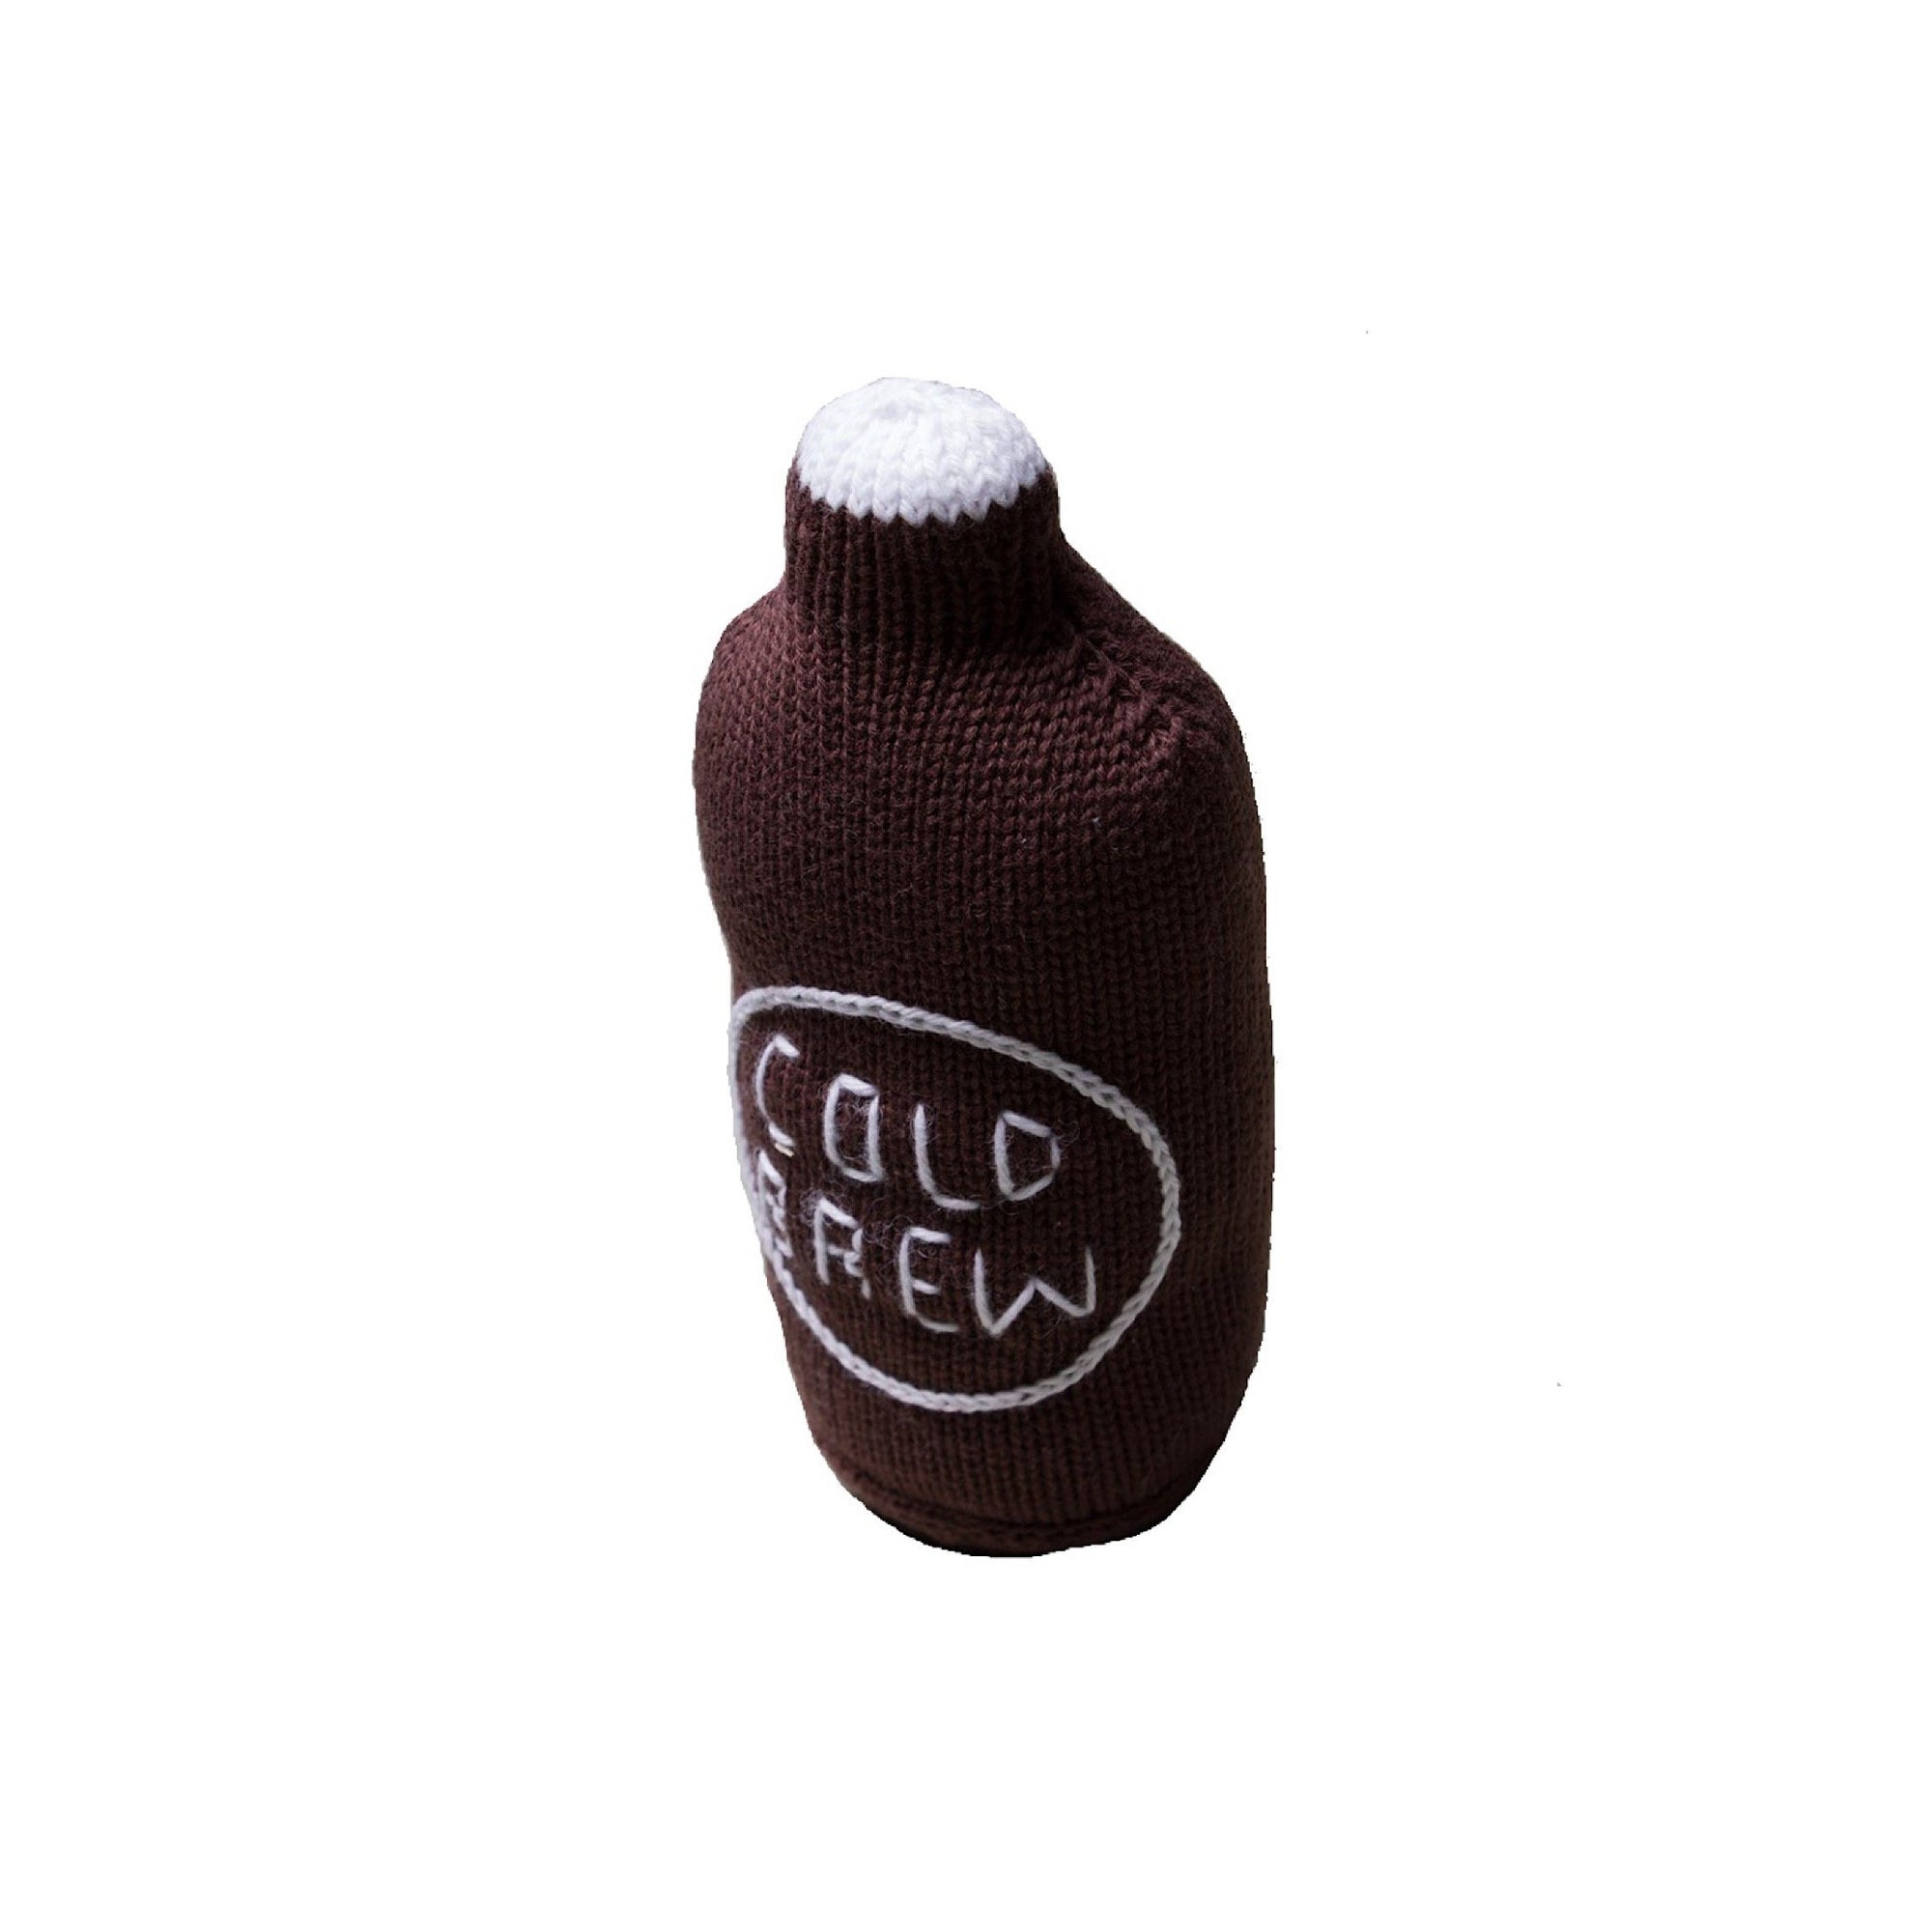 Cold Brew Coffee Knit Rattle